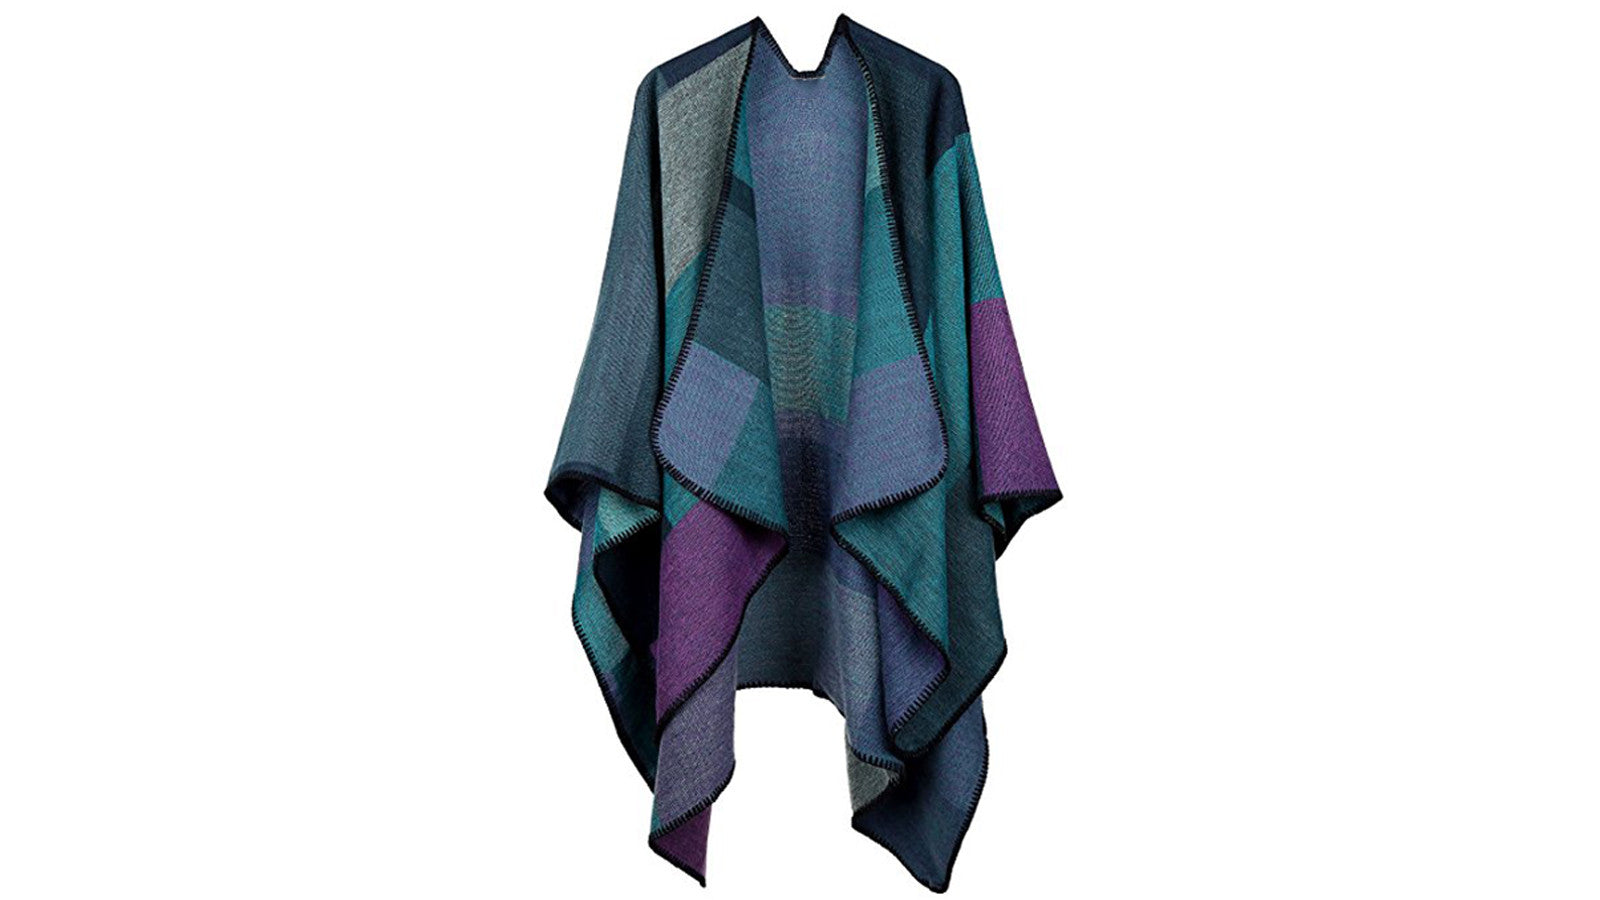 Women's Stylish Winter Poncho Capes